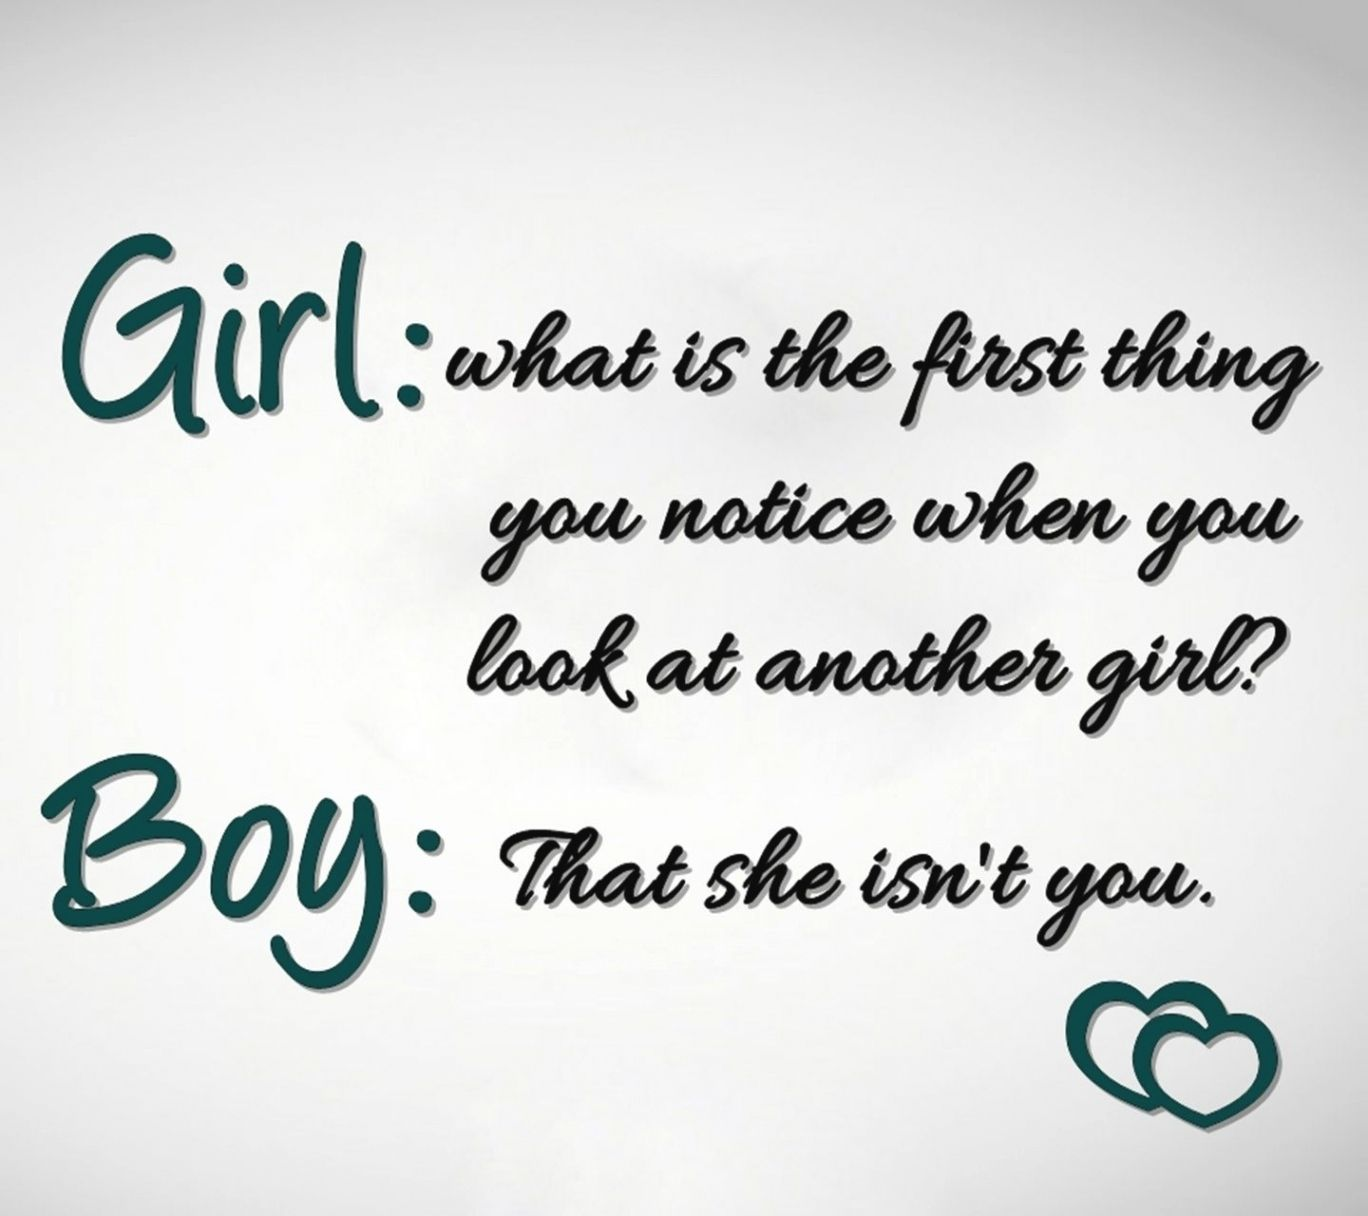 Wallpaper Saying Quotes: Cool Cute Quotes Wallpapers Collection (32+) Throughout